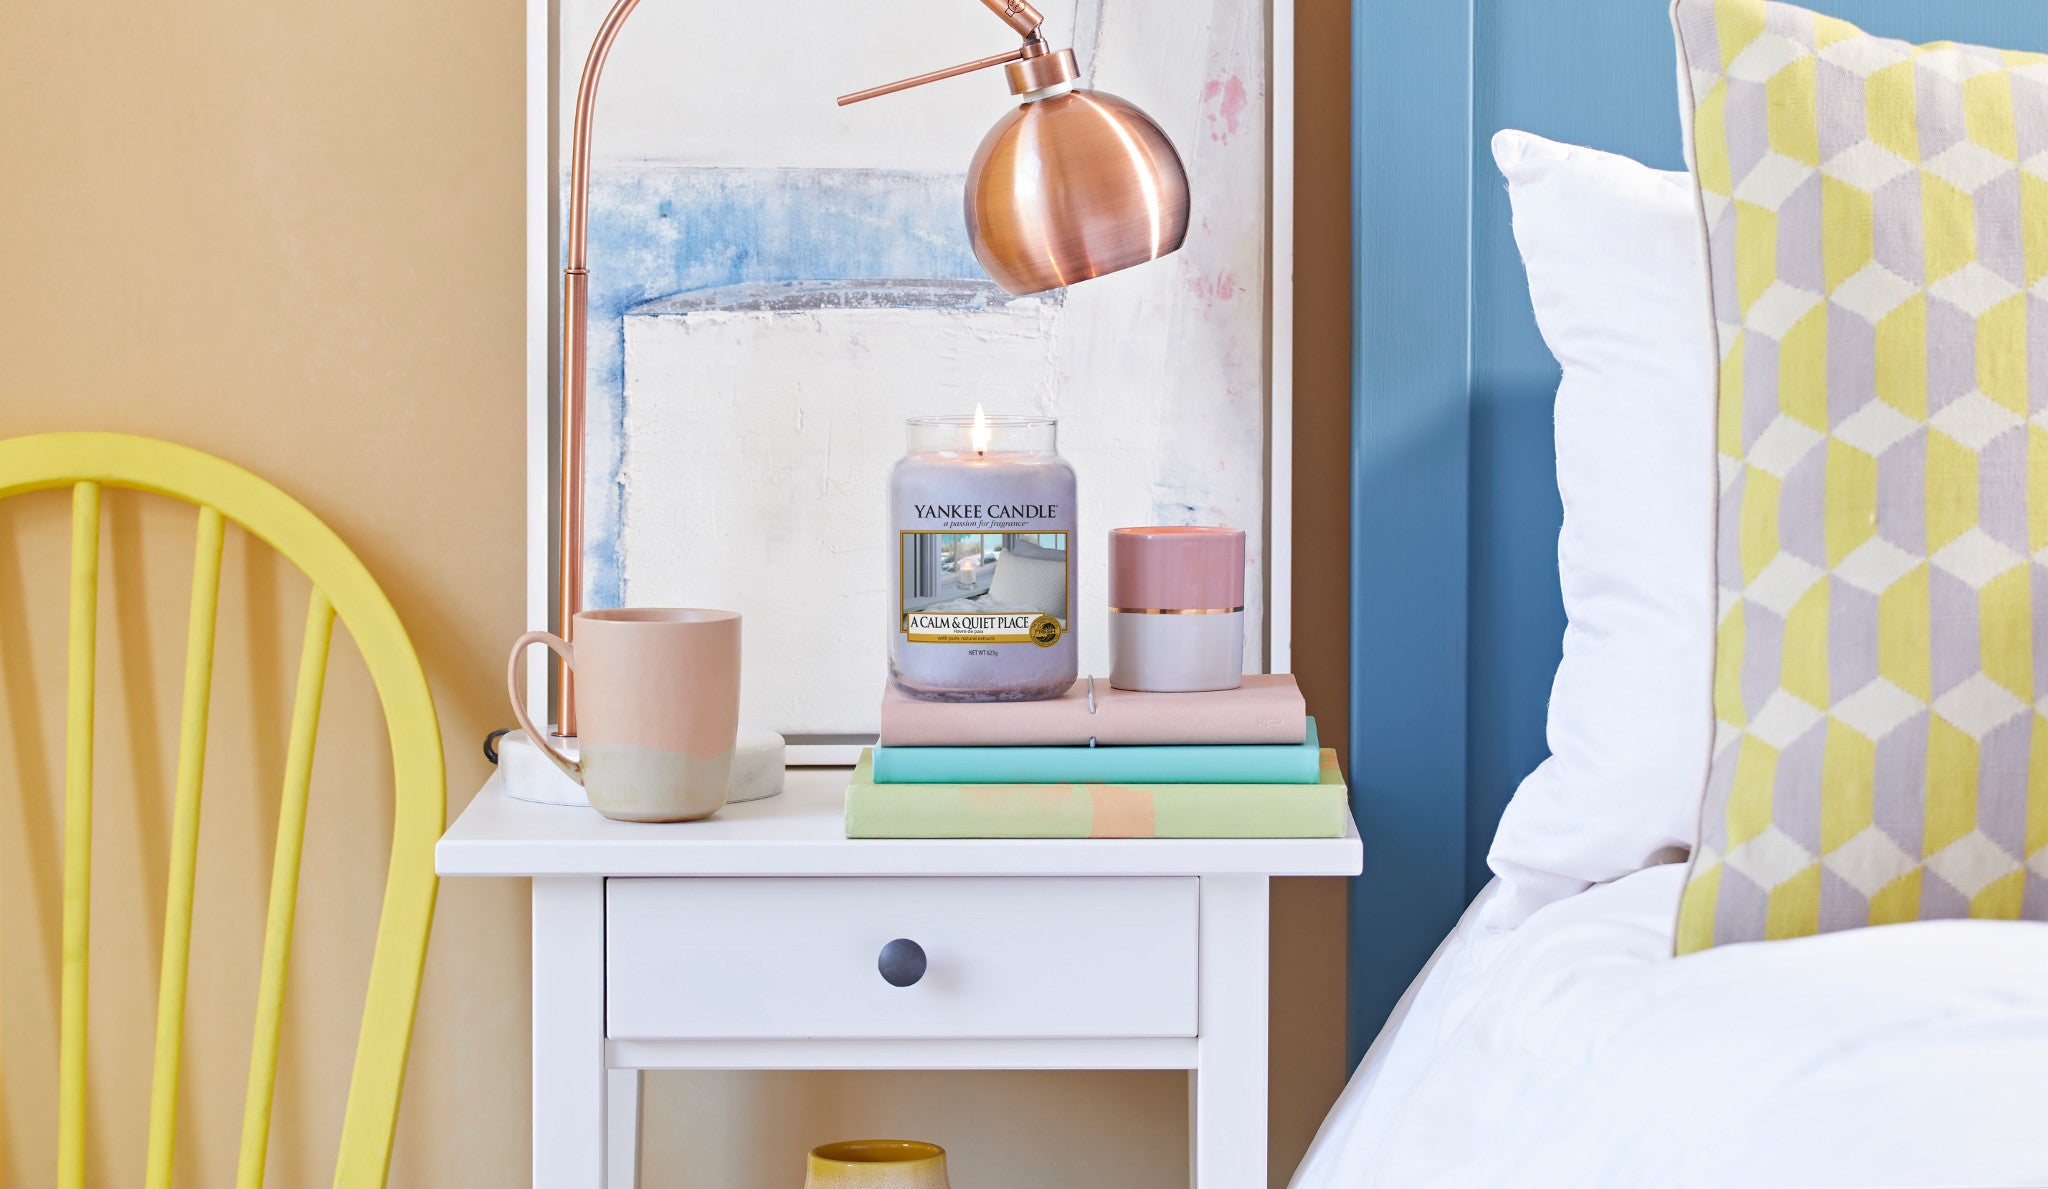 A CALM & QUIET PLACE -Yankee Candle- Giara Piccola